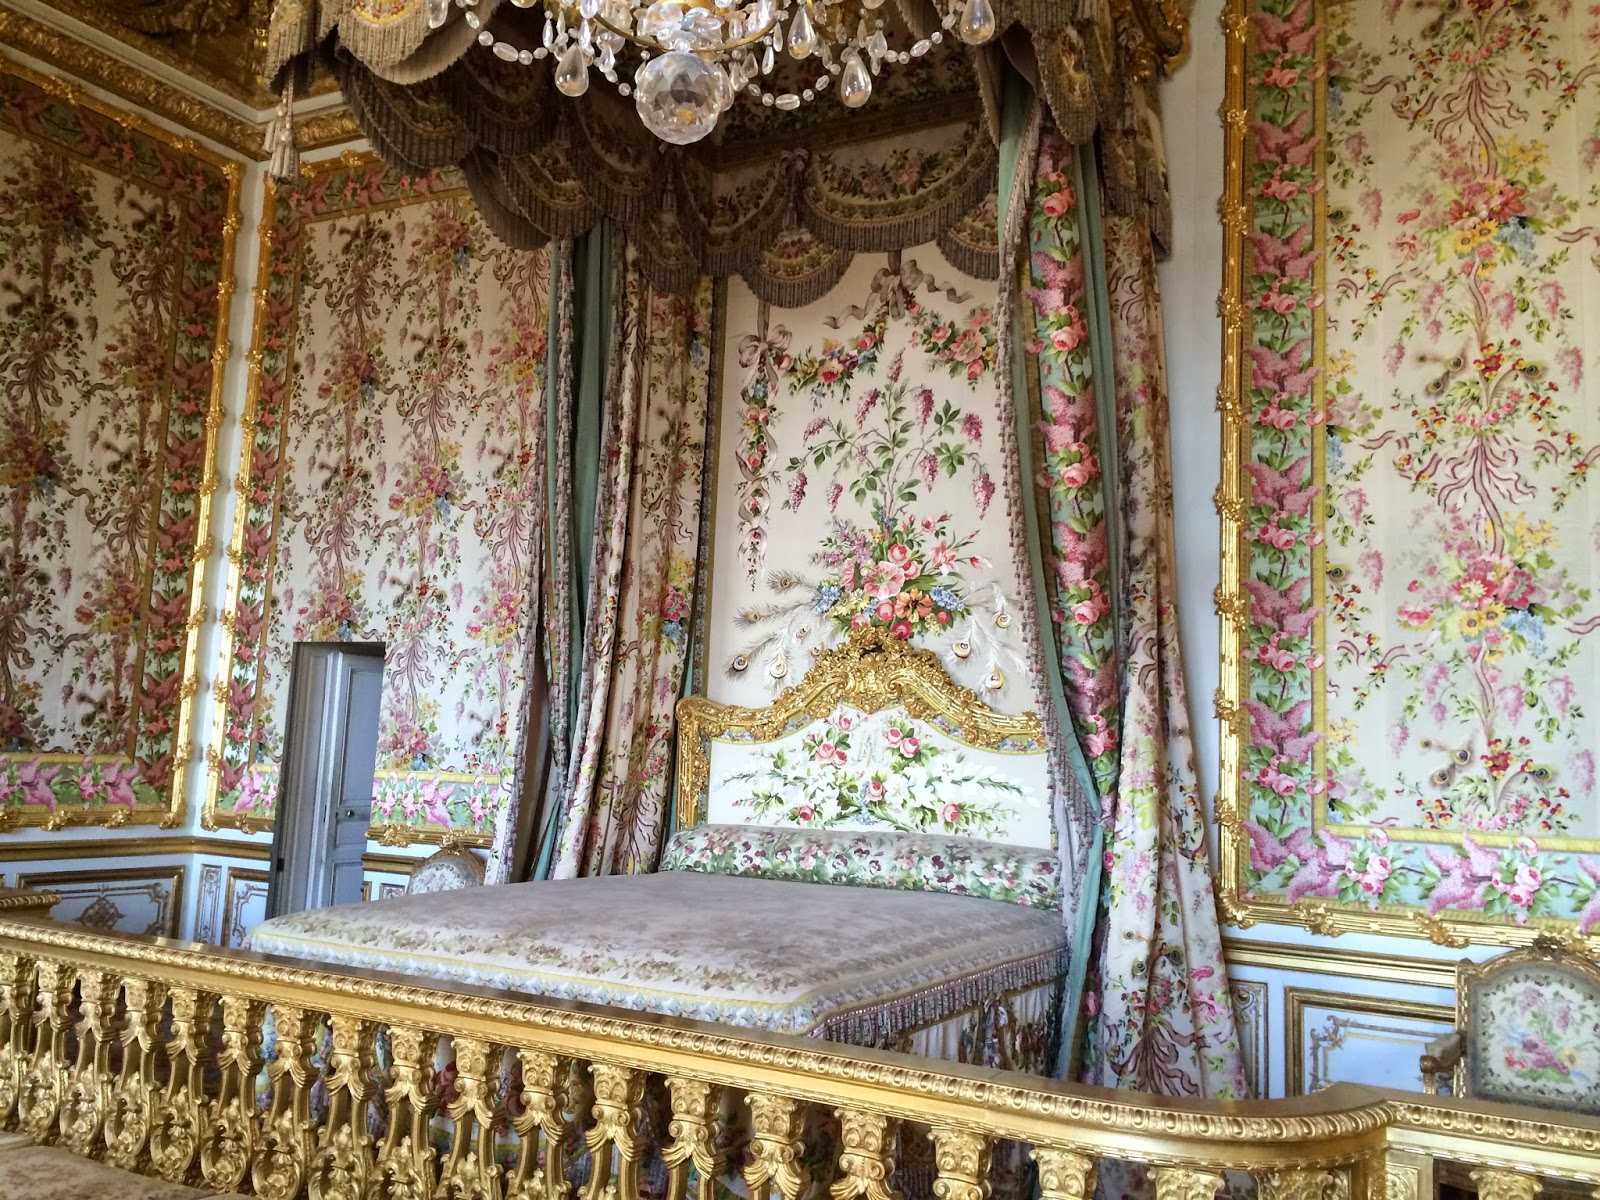 maison decor palace of versailles marie antoinette and